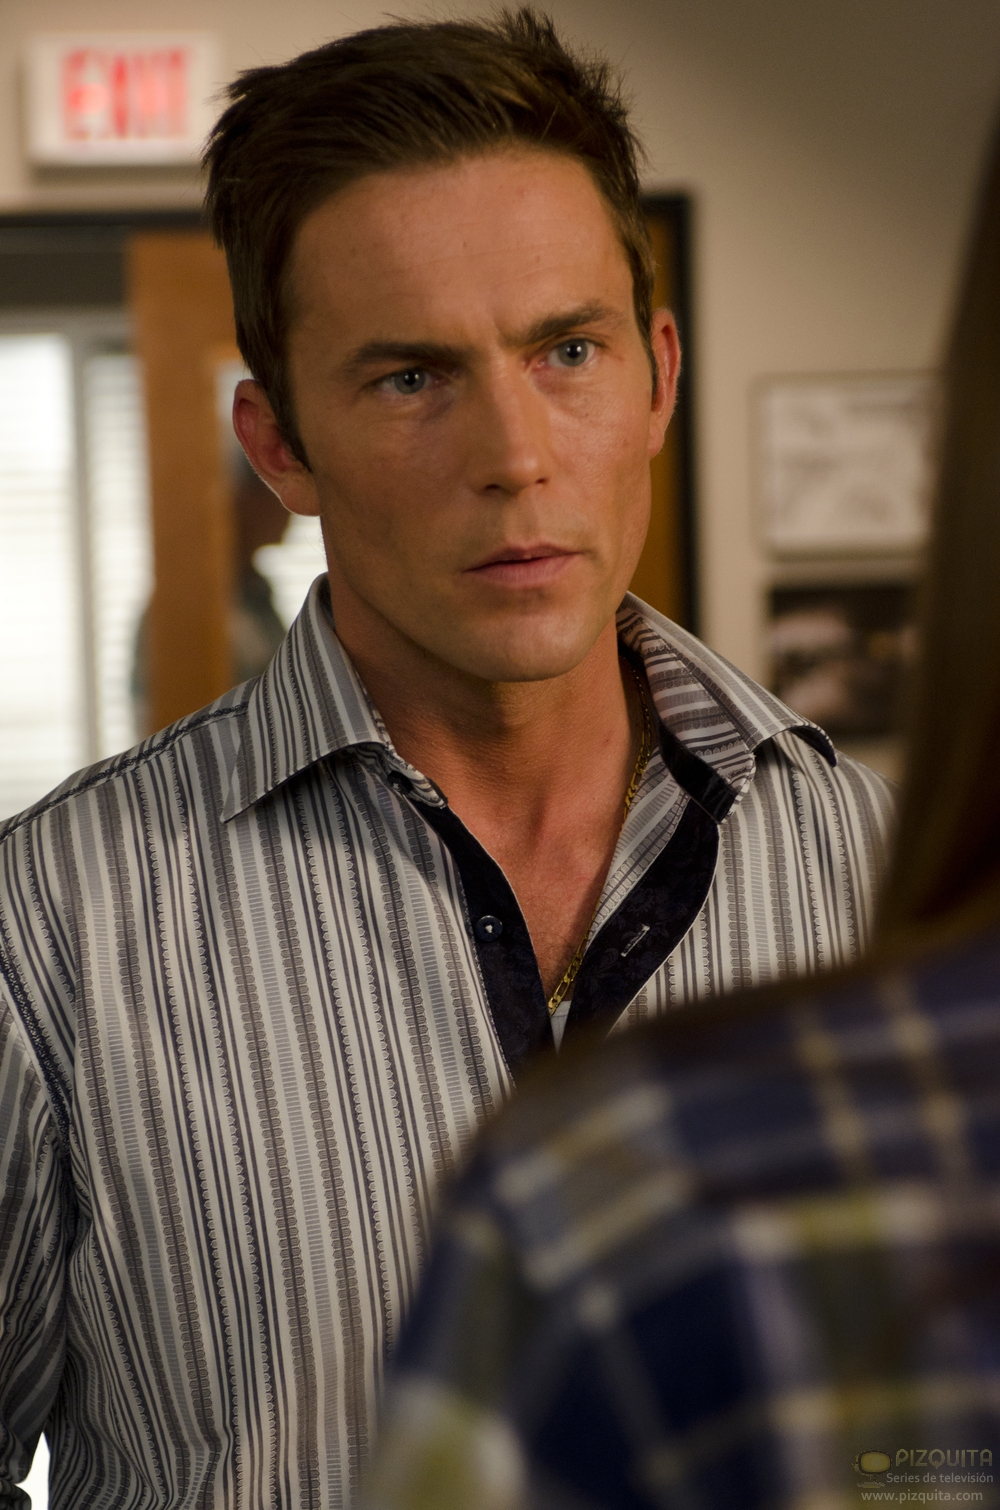 desmond harrington height